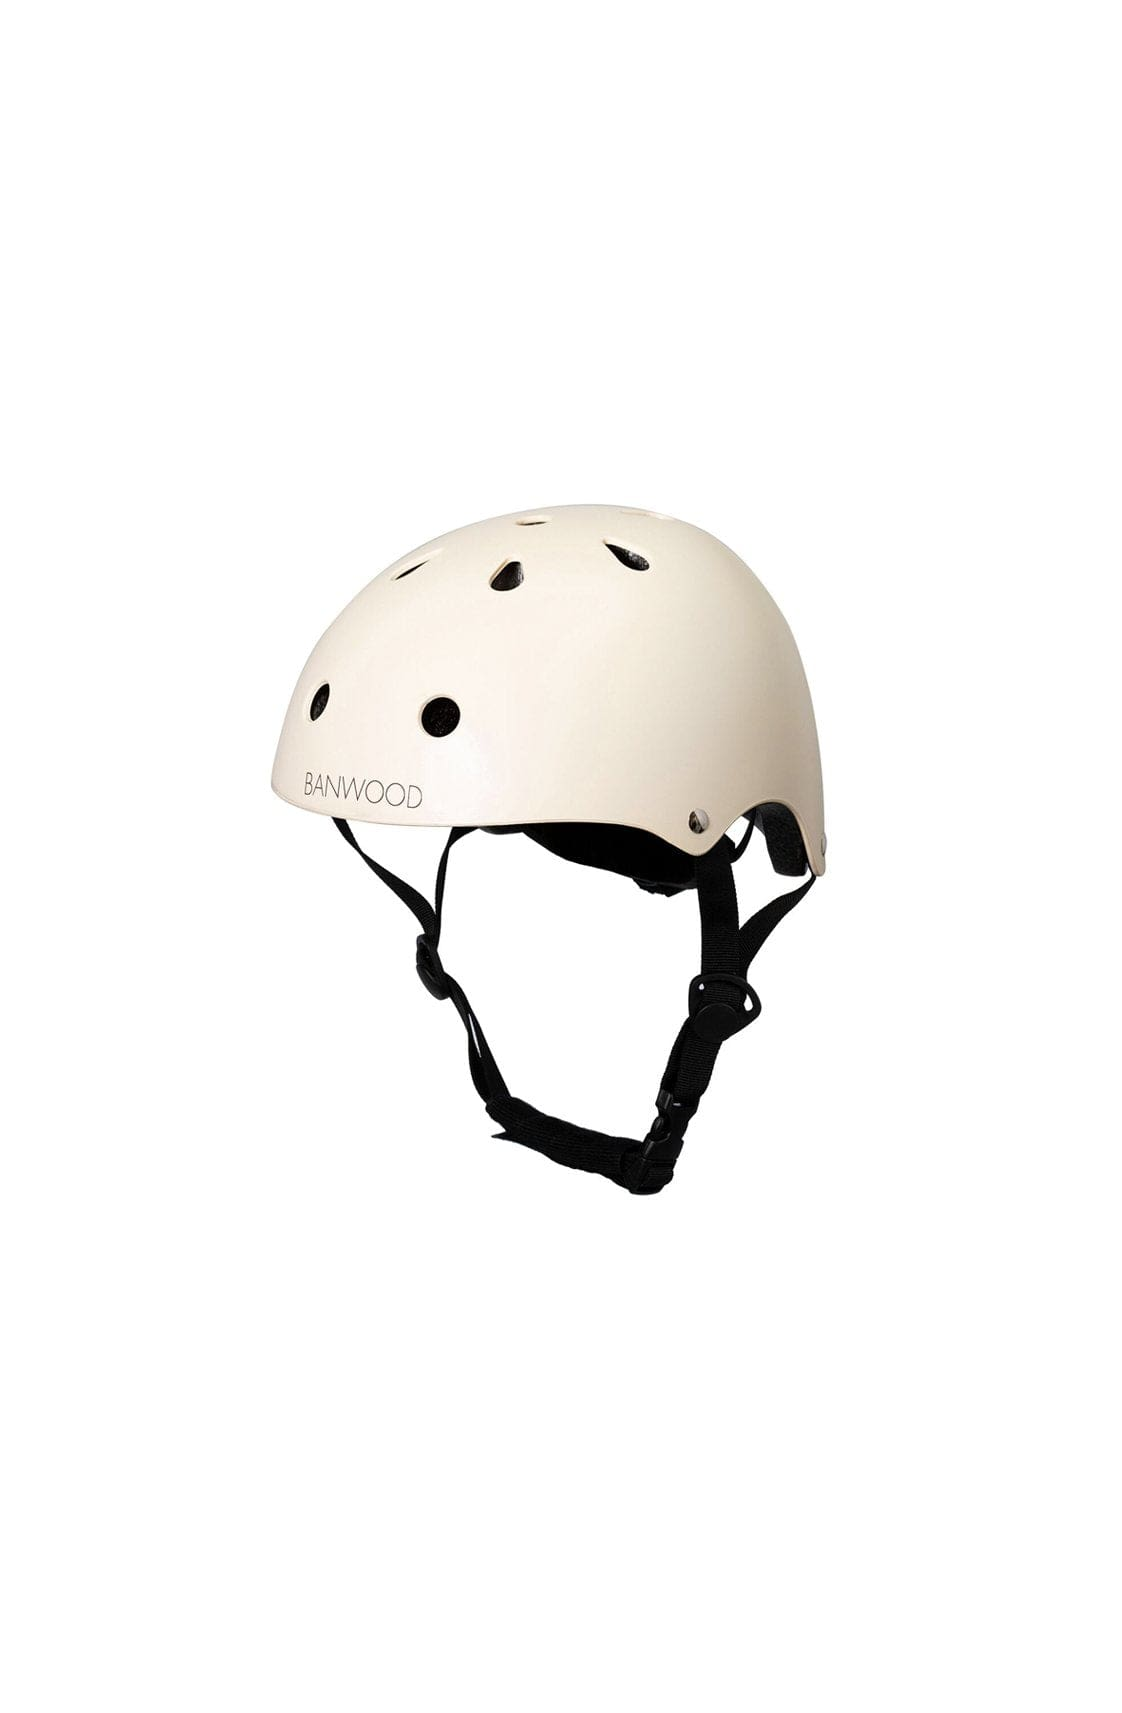 BANWOOD CLASSIC HELMET MATTE CREAM (PRE-ORDER END OCT) - Hello Little Birdie